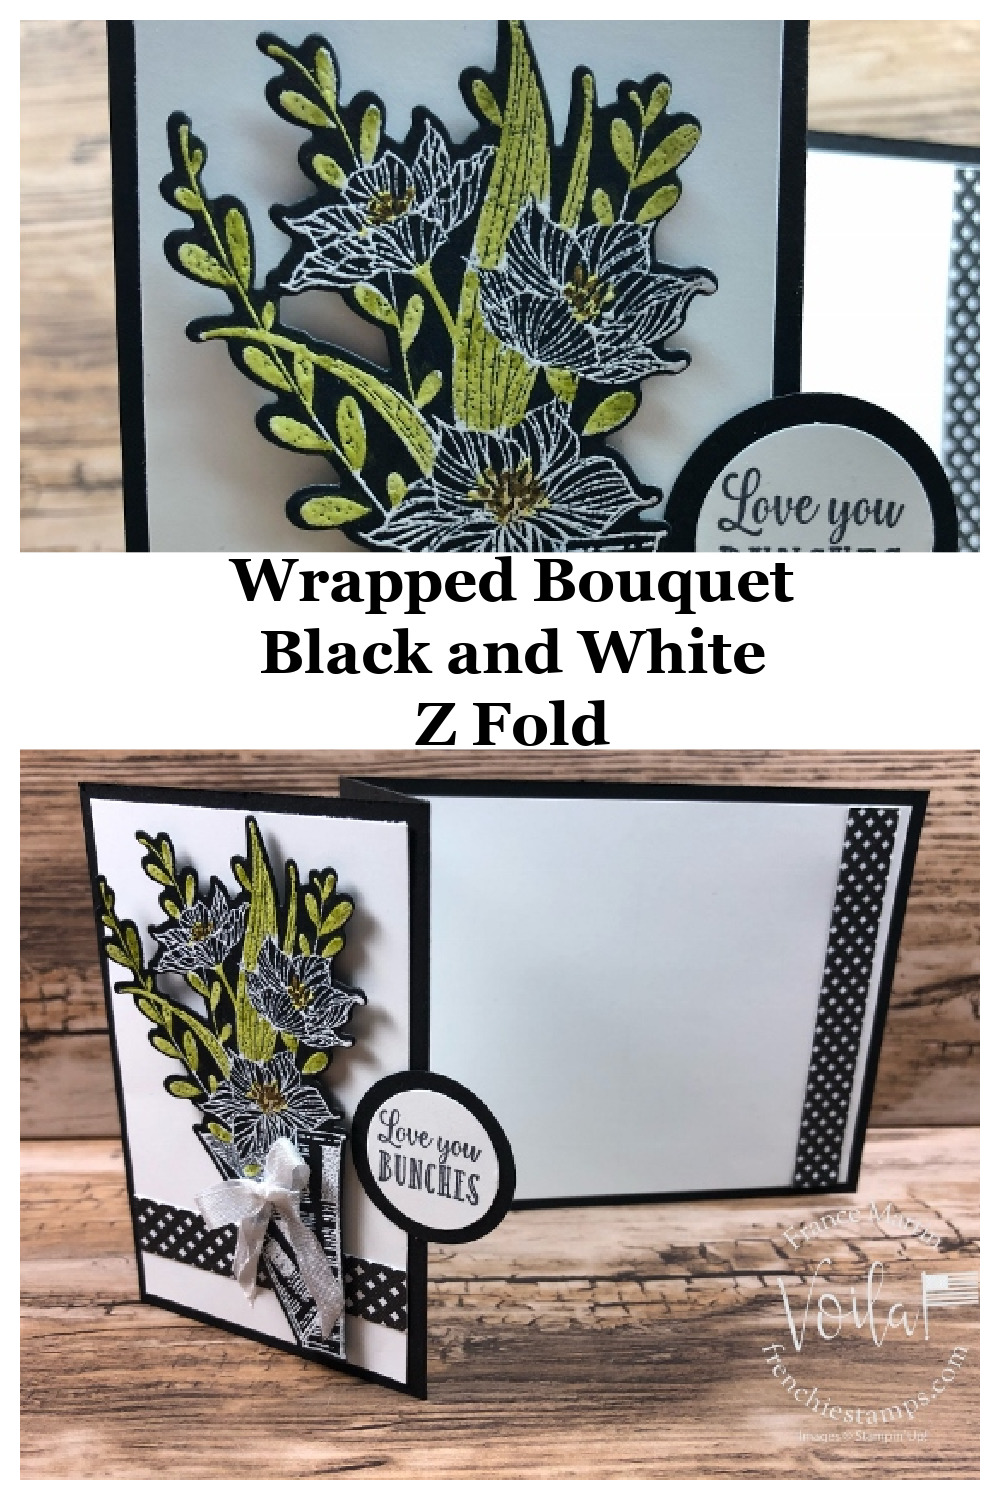 Wrapped Bouquet Z Fold In Black And White